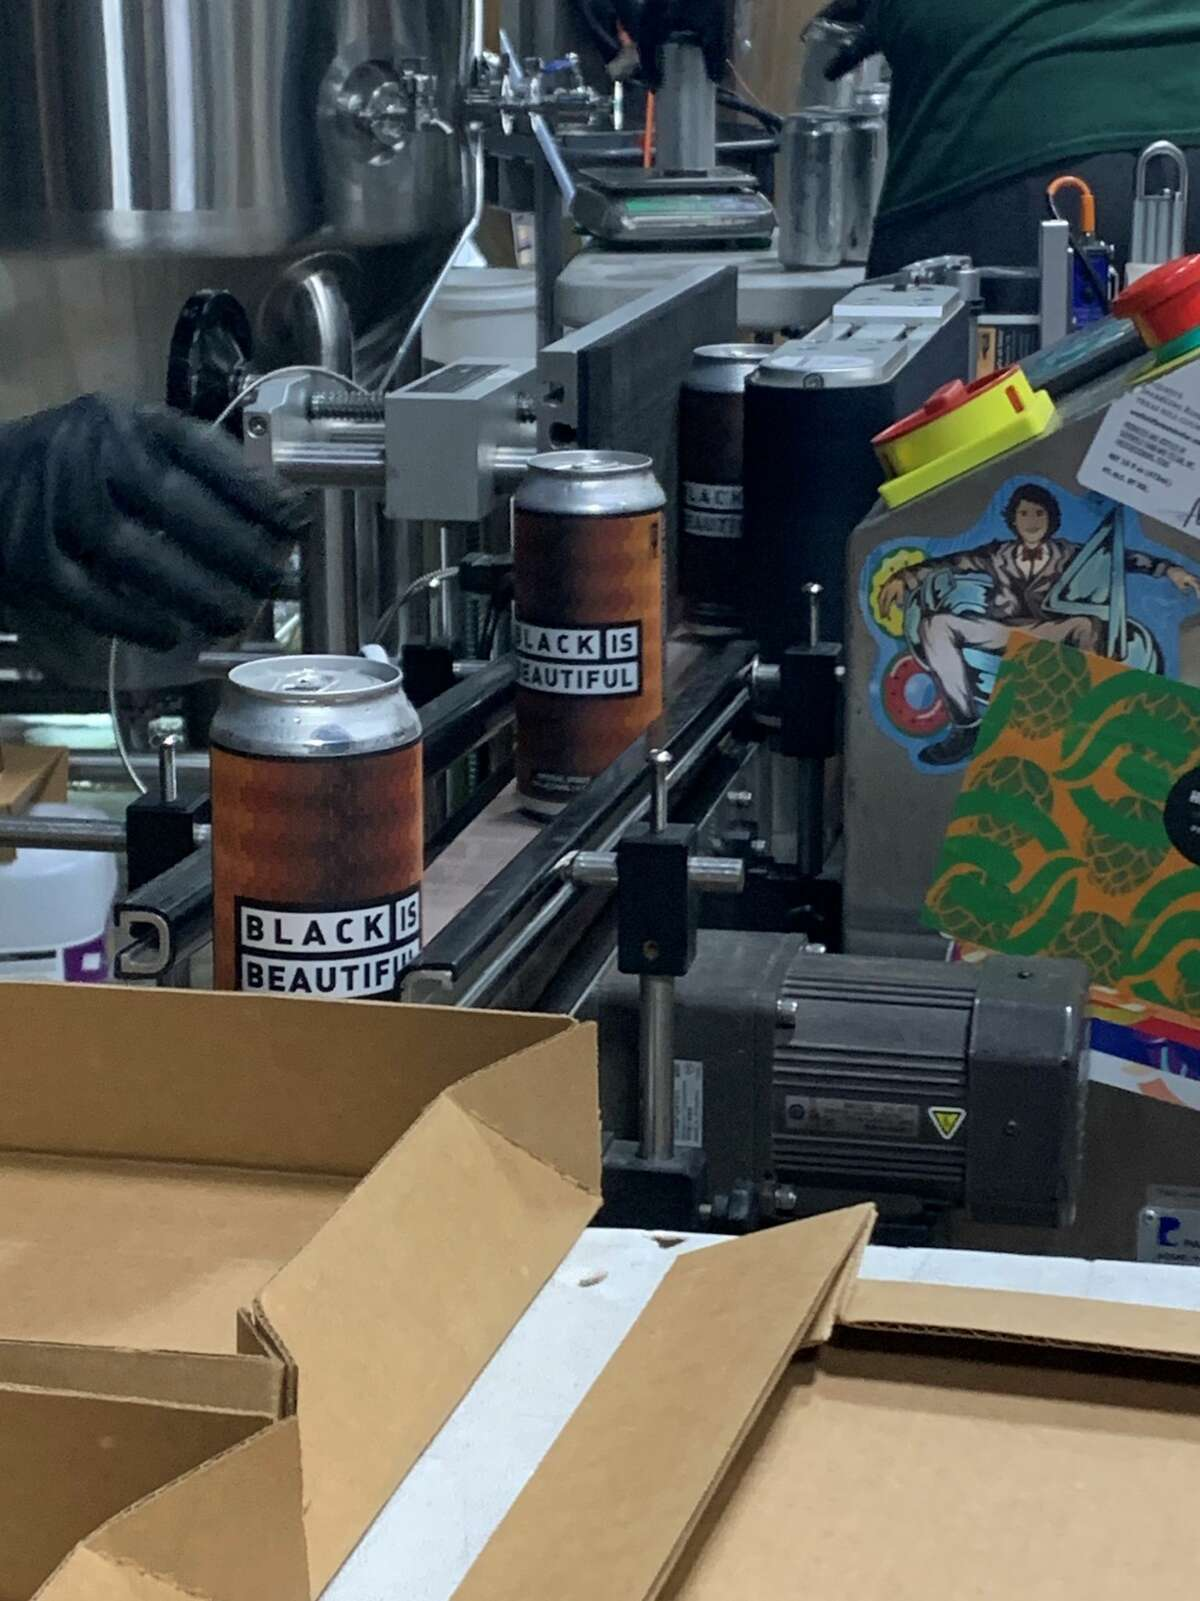 An employee of Weathered Souls Brewery places label on cans of its Black is Beautiful stout in San Antonio on Monday, June 29, 2020. The initiative behind the beer has grown from the local brewery's call for social justice into a worldwide campaign.